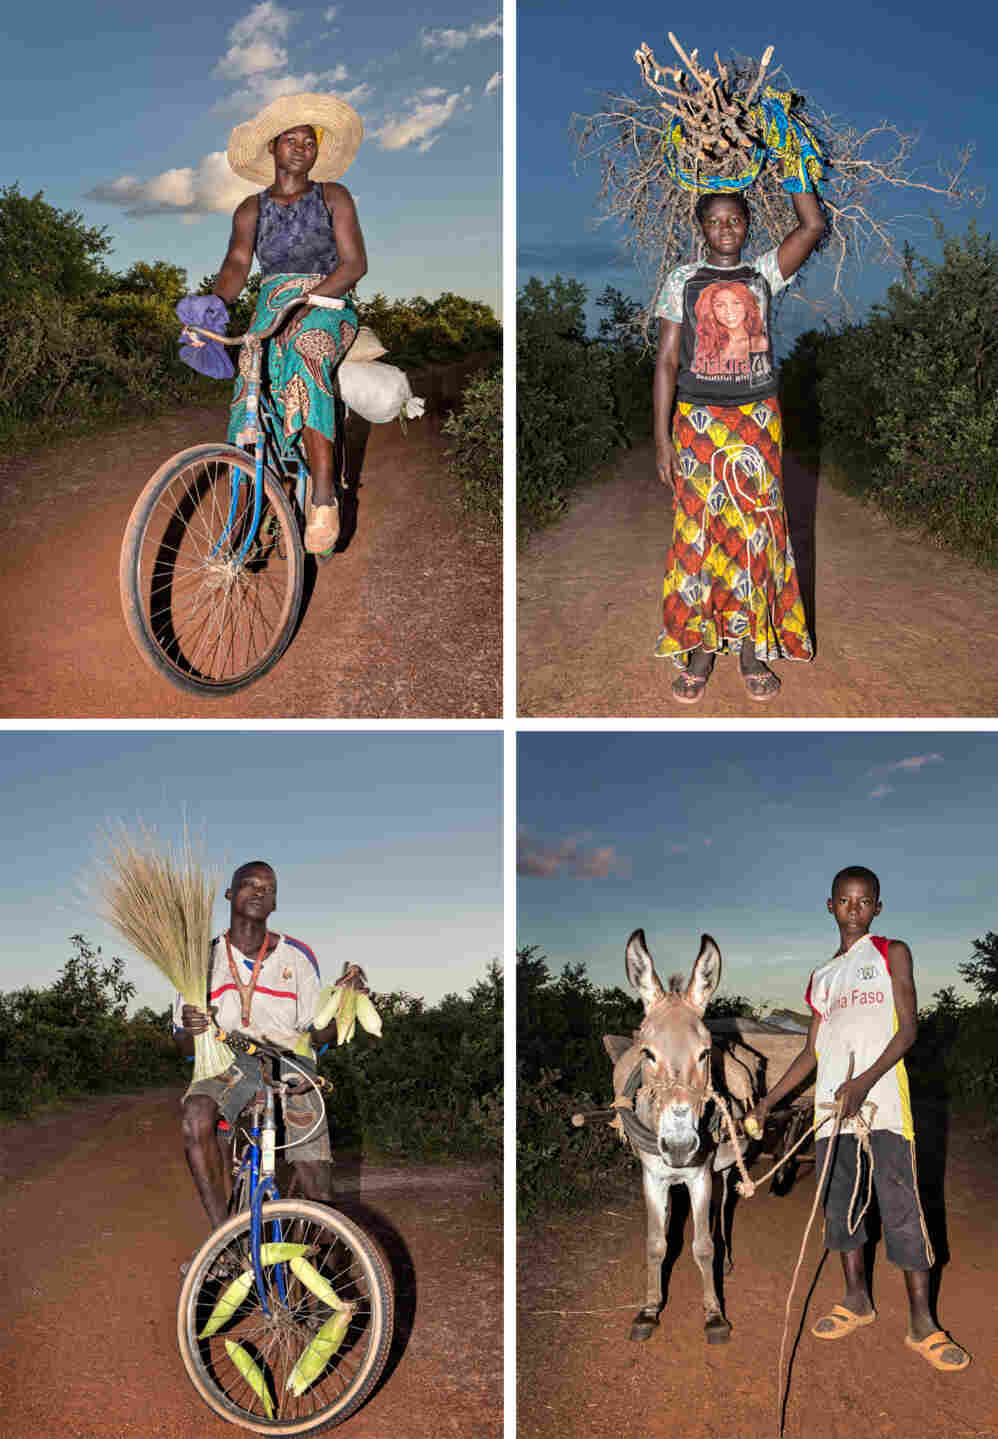 Sur La Route, a series by David Pace in Burkina Faso, documents people on their way home from work.